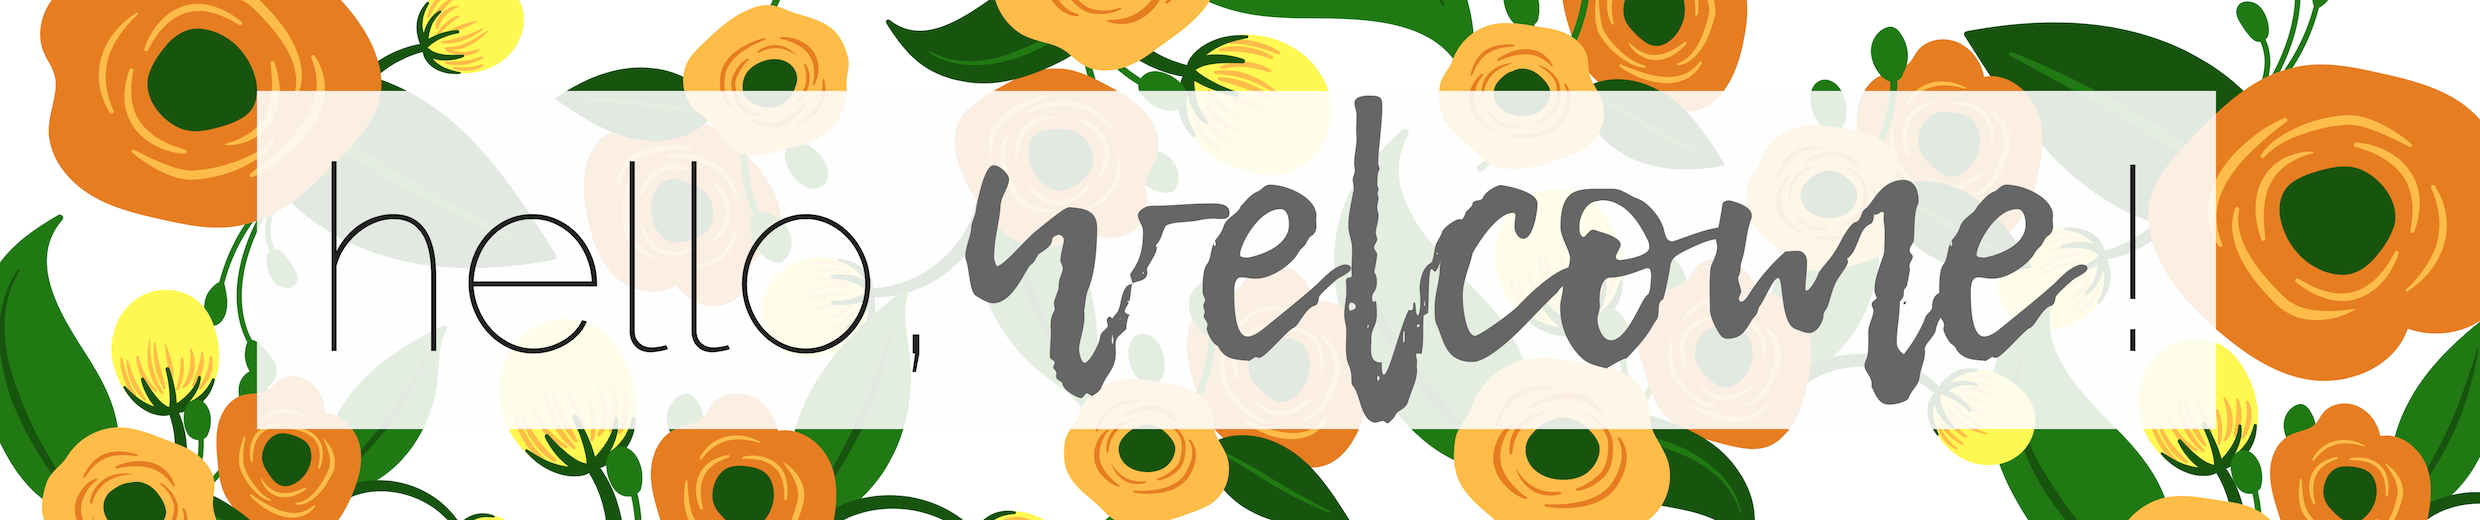 Flower welcome banner.png